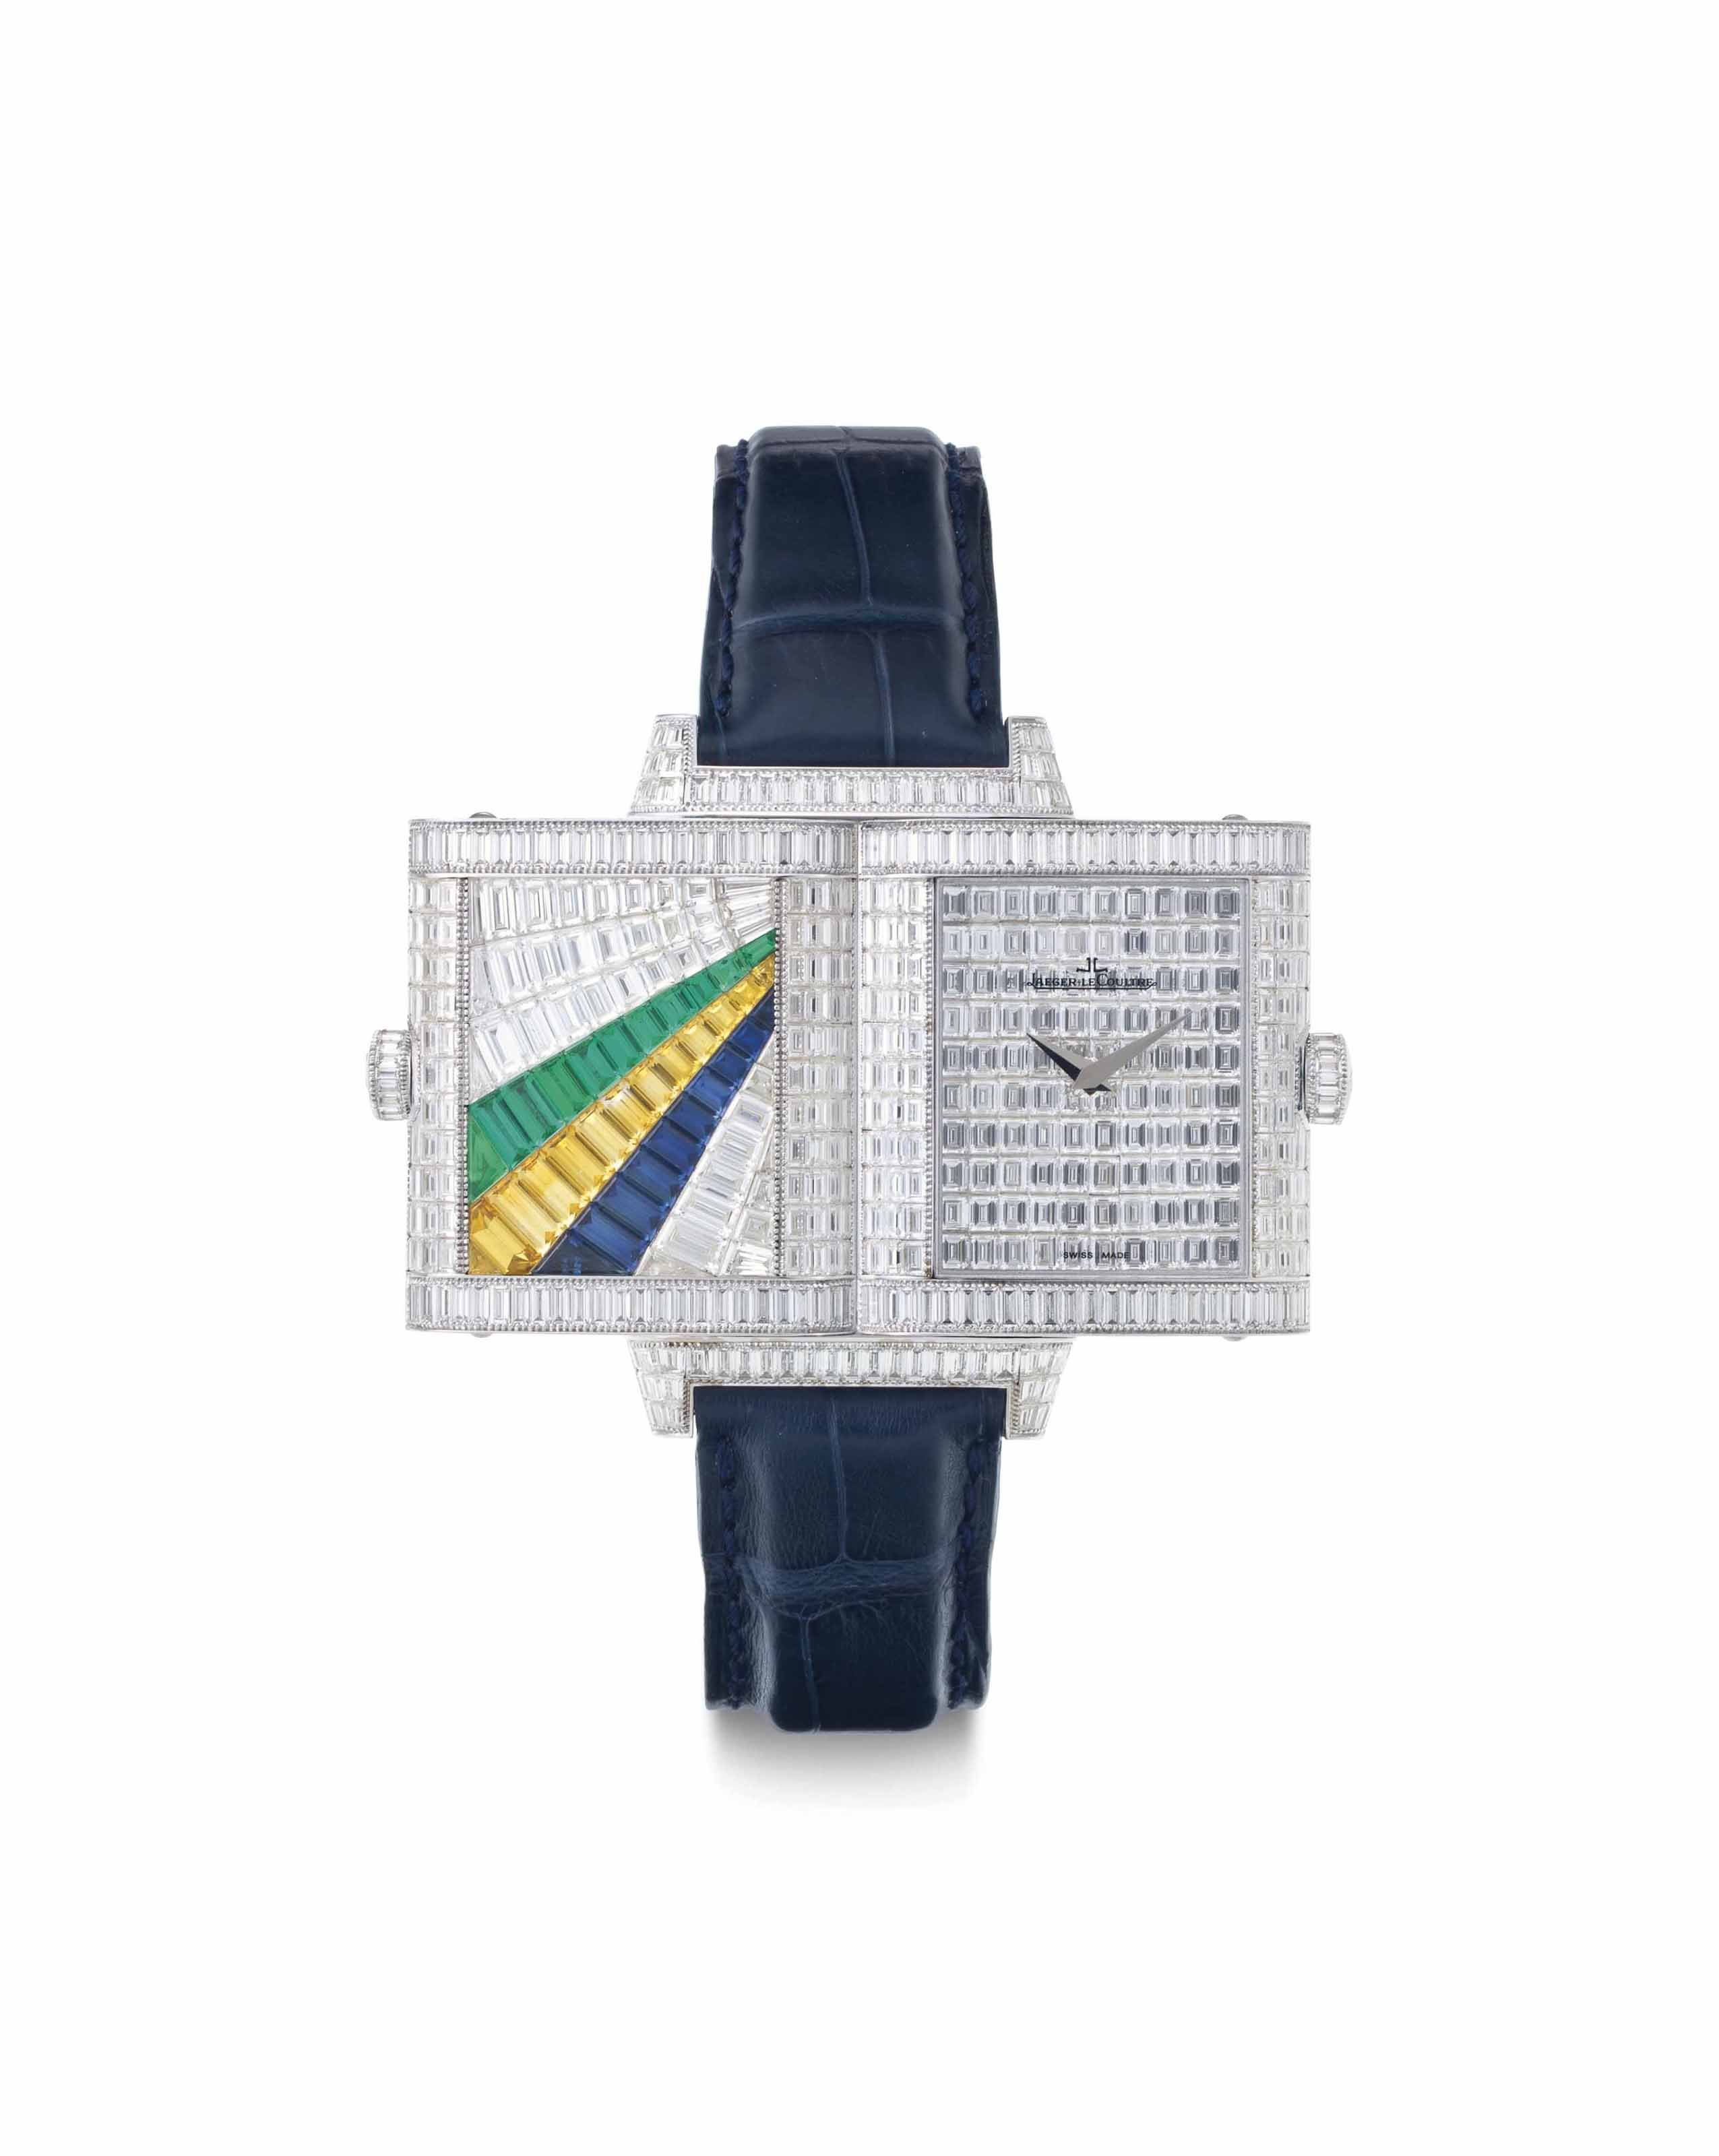 Jaeger-LeCoultre. A Fine and Possibly Unique 18k White Gold and Diamond, Sapphire, and Emerald-Set Reversible Wristwatch